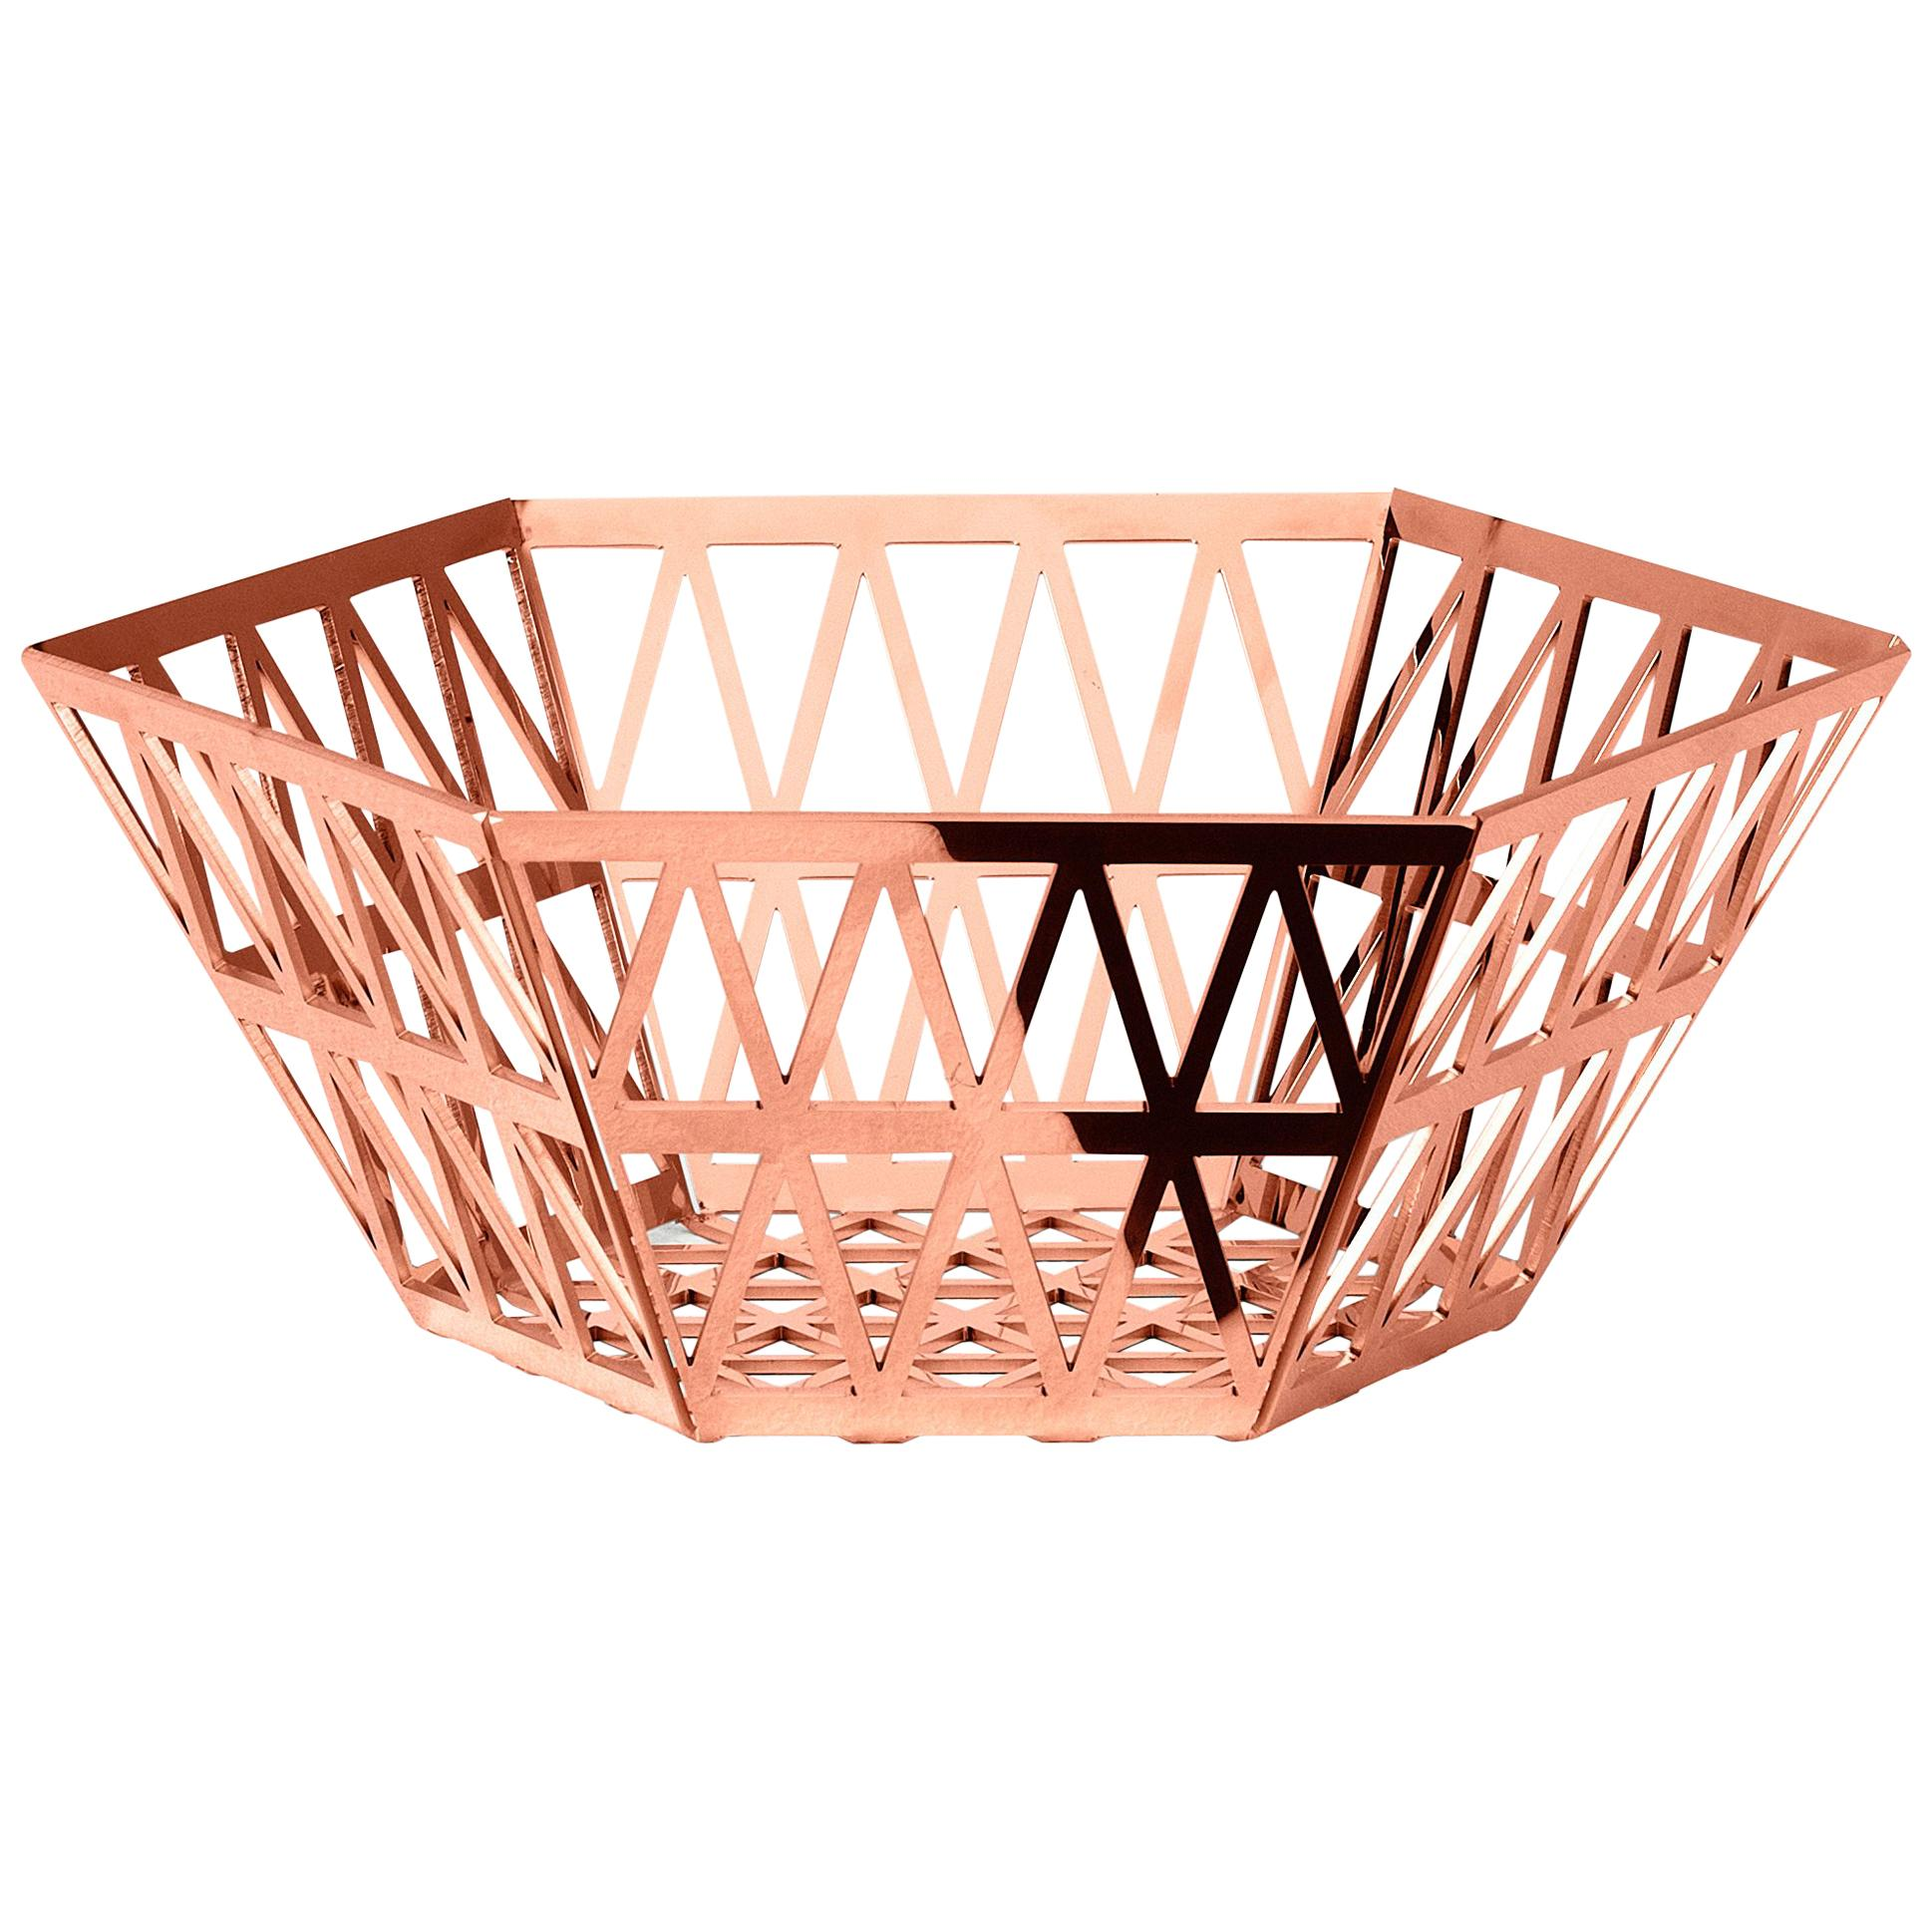 Ghidini 1961 Tip Top Tall Tray in Rose Gold by Richard Hutten